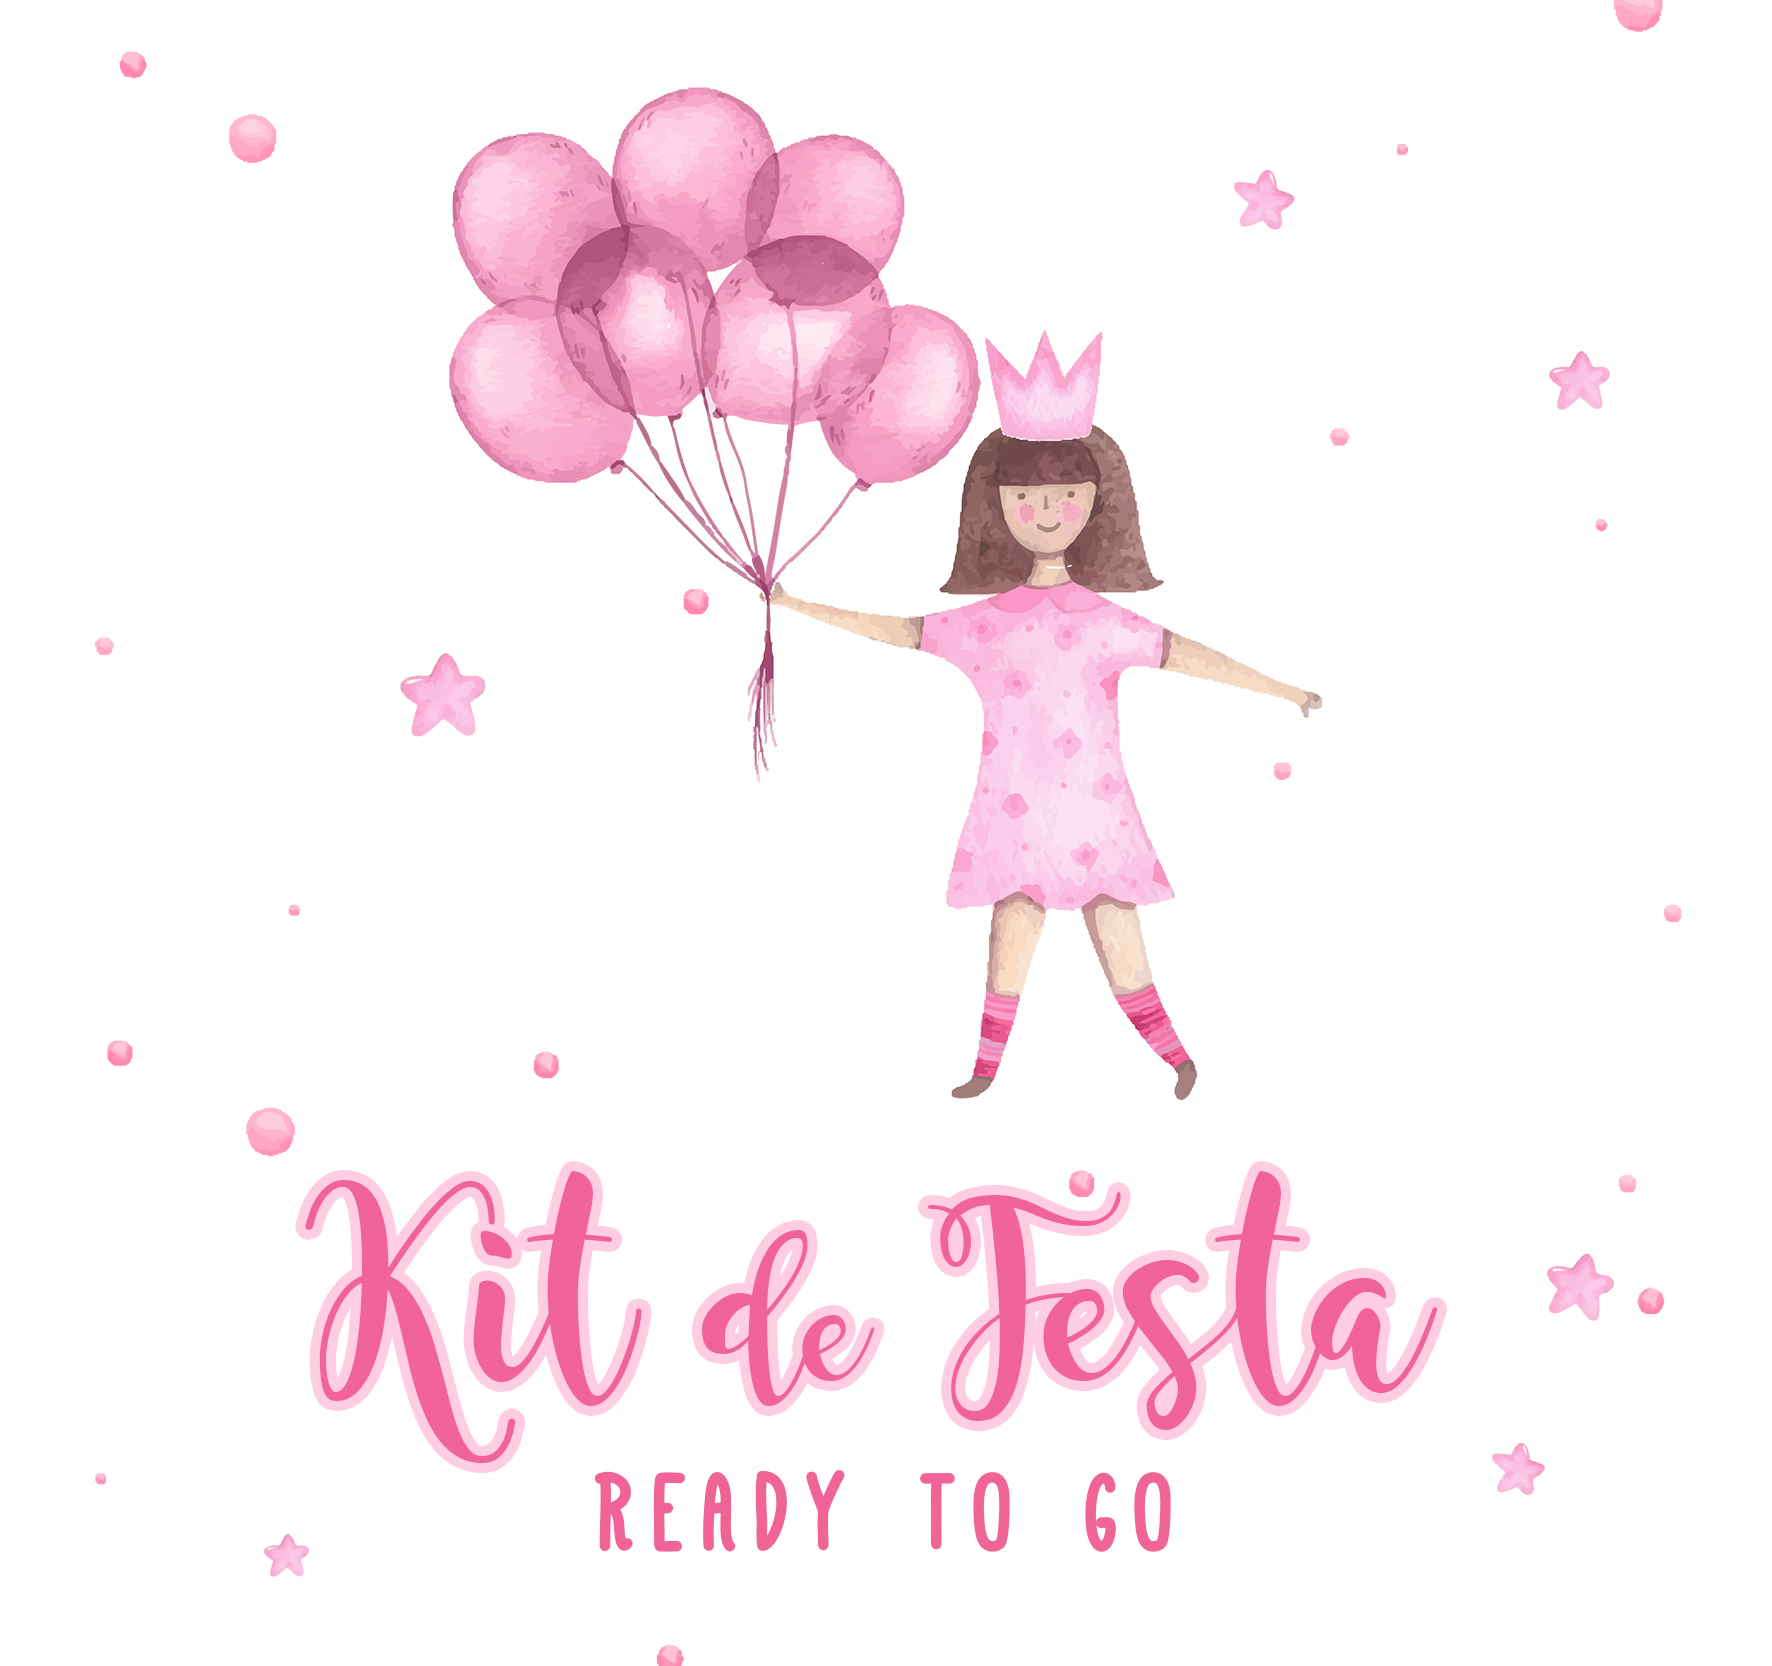 Kit de Festa READY TO GO - PRINCESA AGUARELA